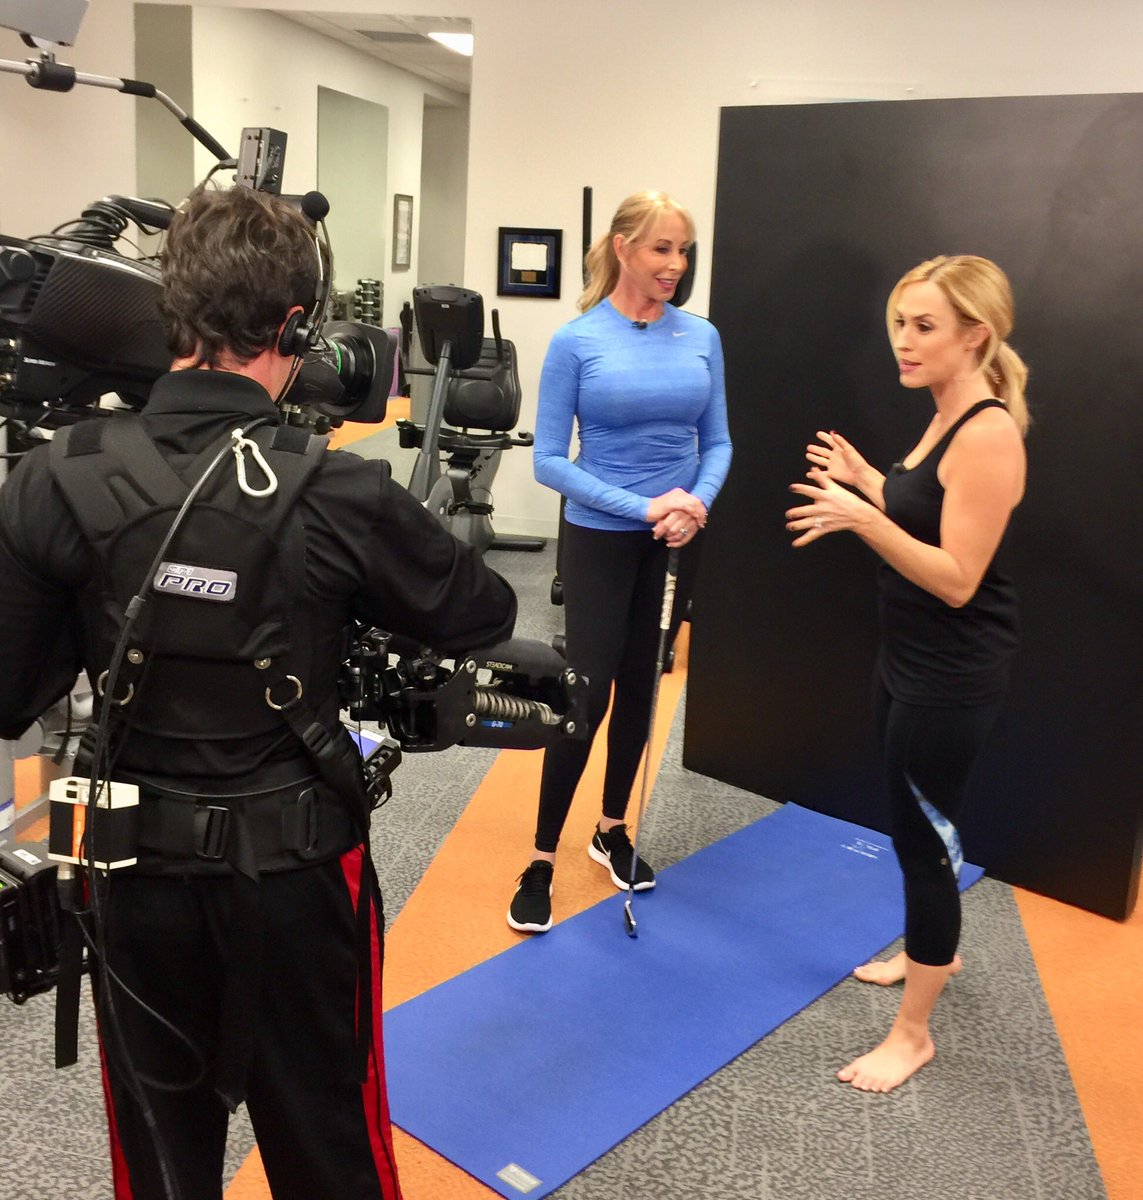 Katherine Roberts On Twitter It S A Wrap More Yoga For Golfers Tips Are In The Can For Gcmorningdrive Thanks To Lthompsongc For Making Me Look Good Yoga Golf Tpi Https T Co Qowydstorq